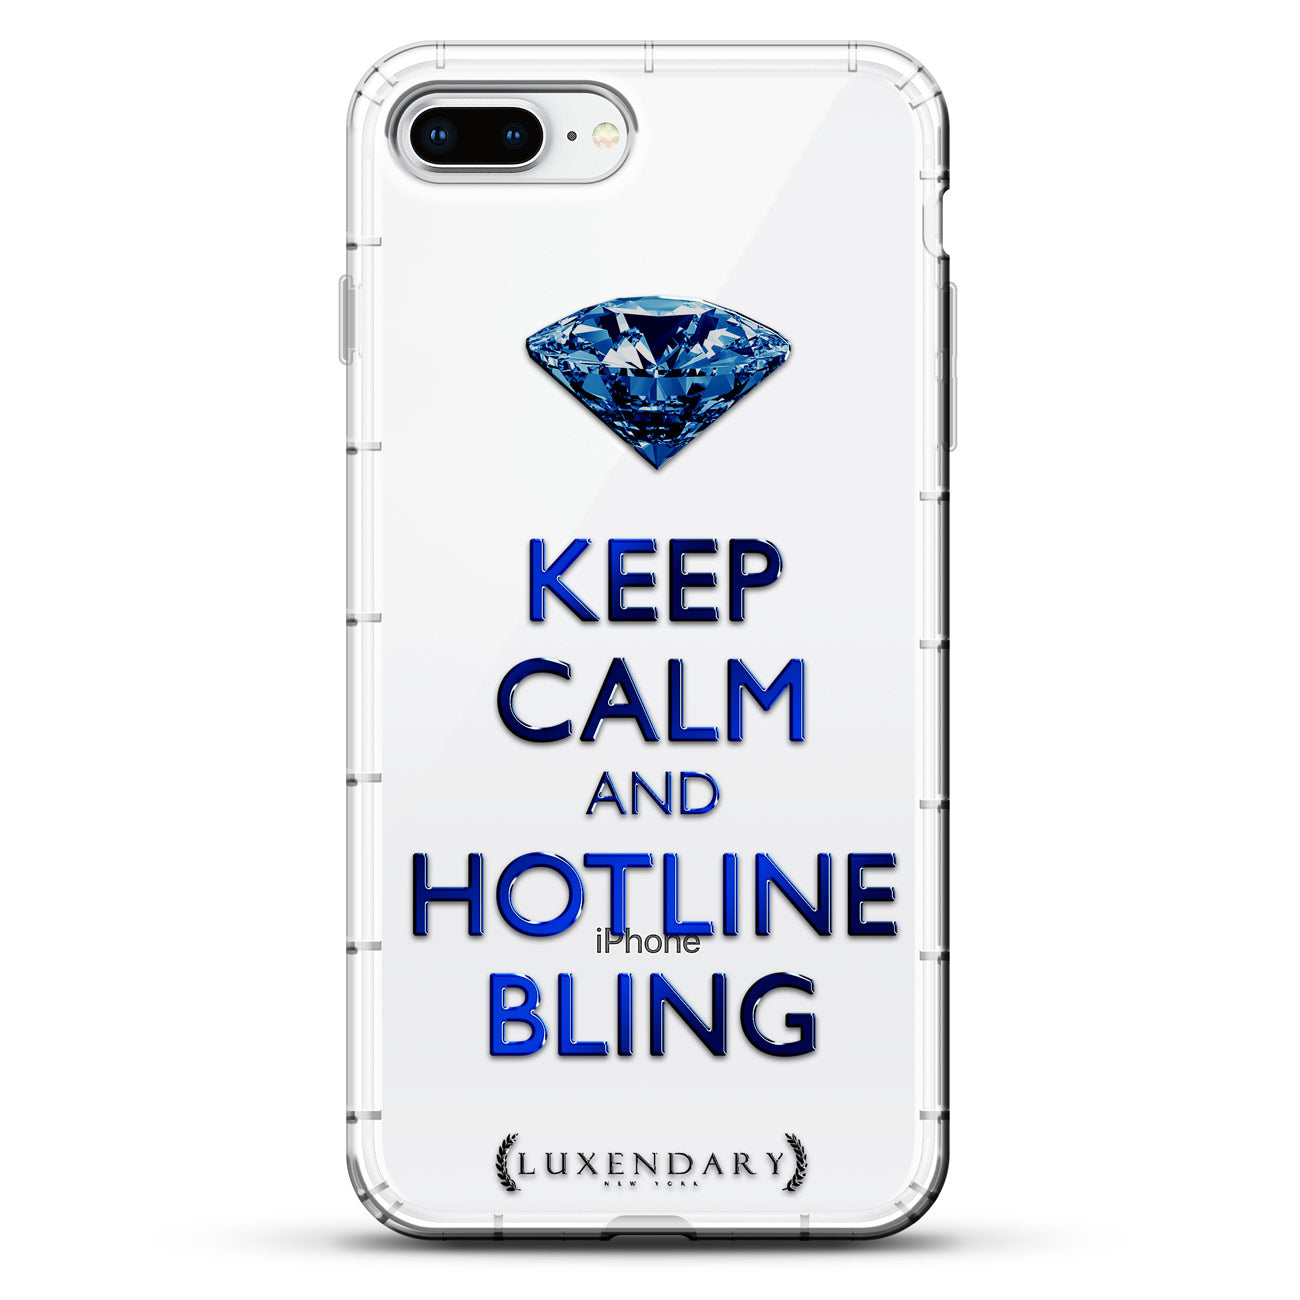 Keep Calm And Hotline Bling